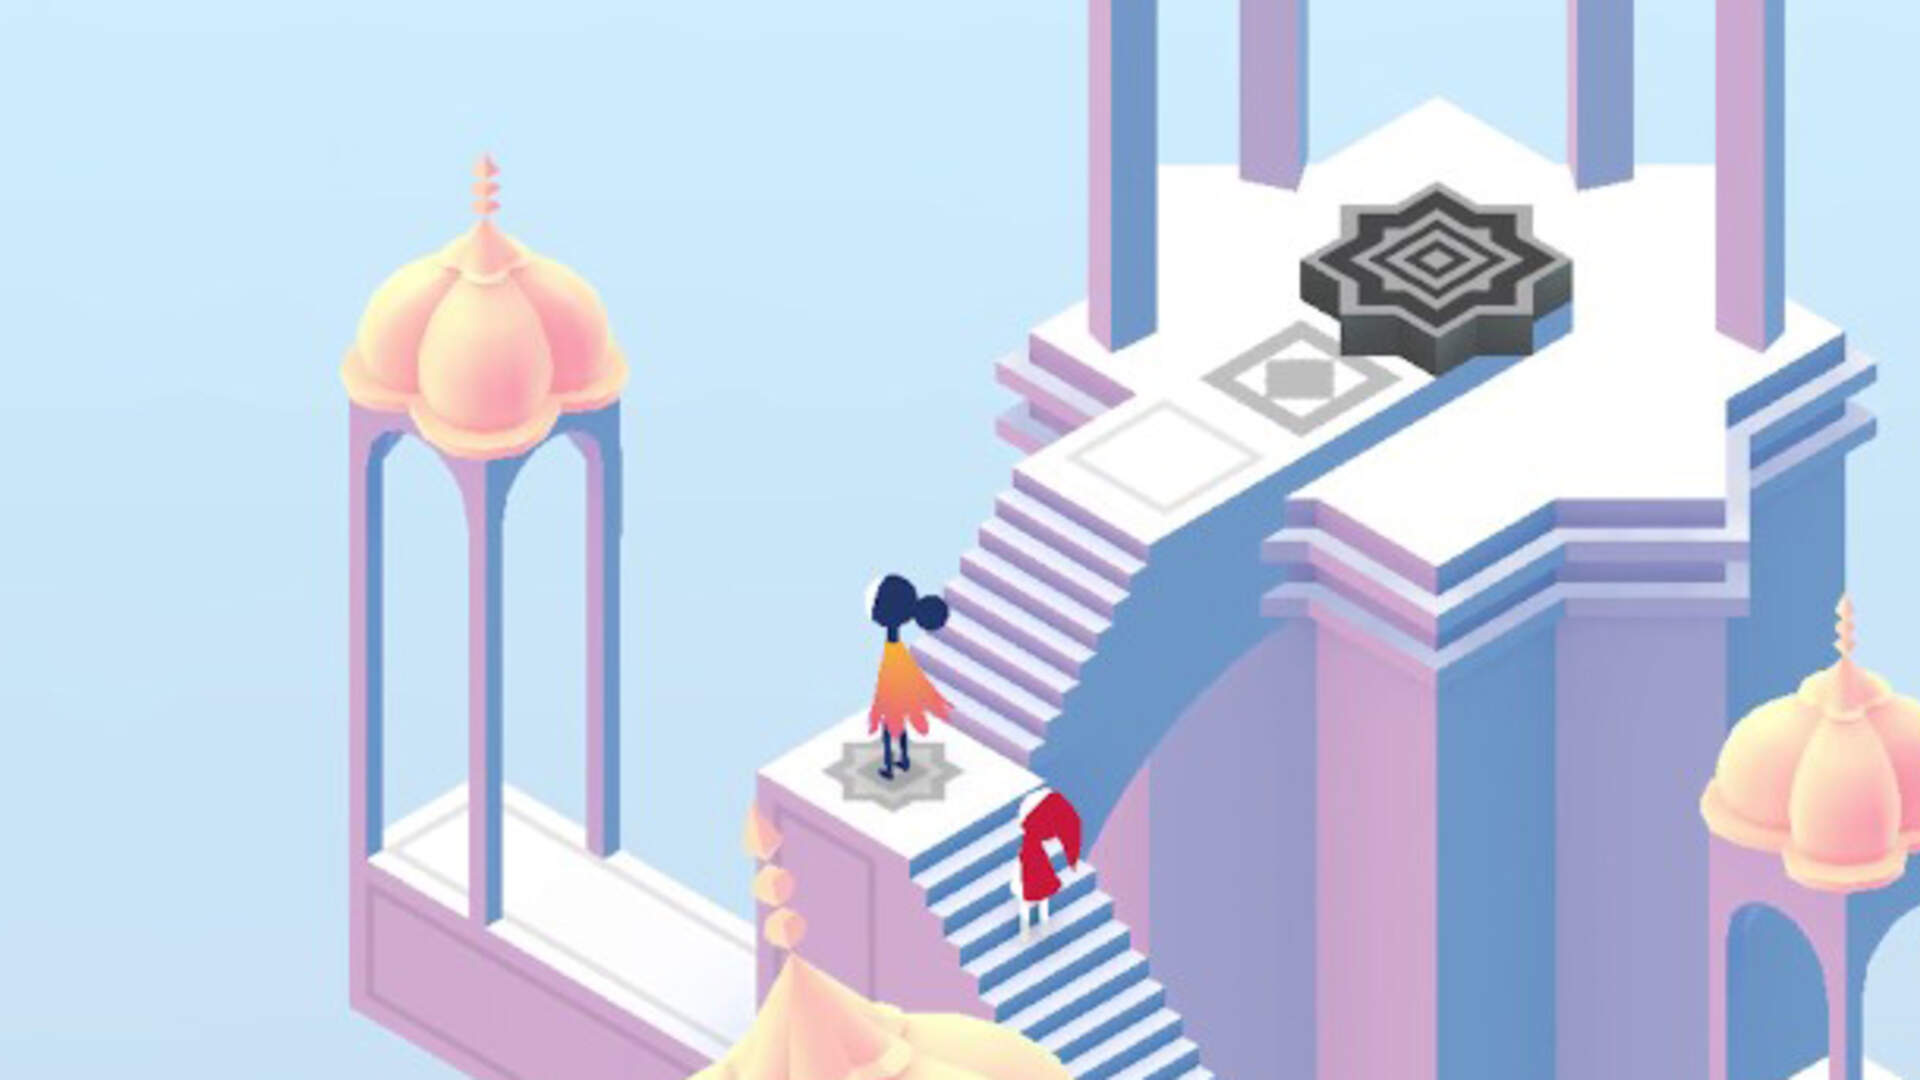 Monument Valley 2 Pulls a Beyoncé; Plus an Incoming Cowboy Bebop Live-Action Adaptation Brews Controversy